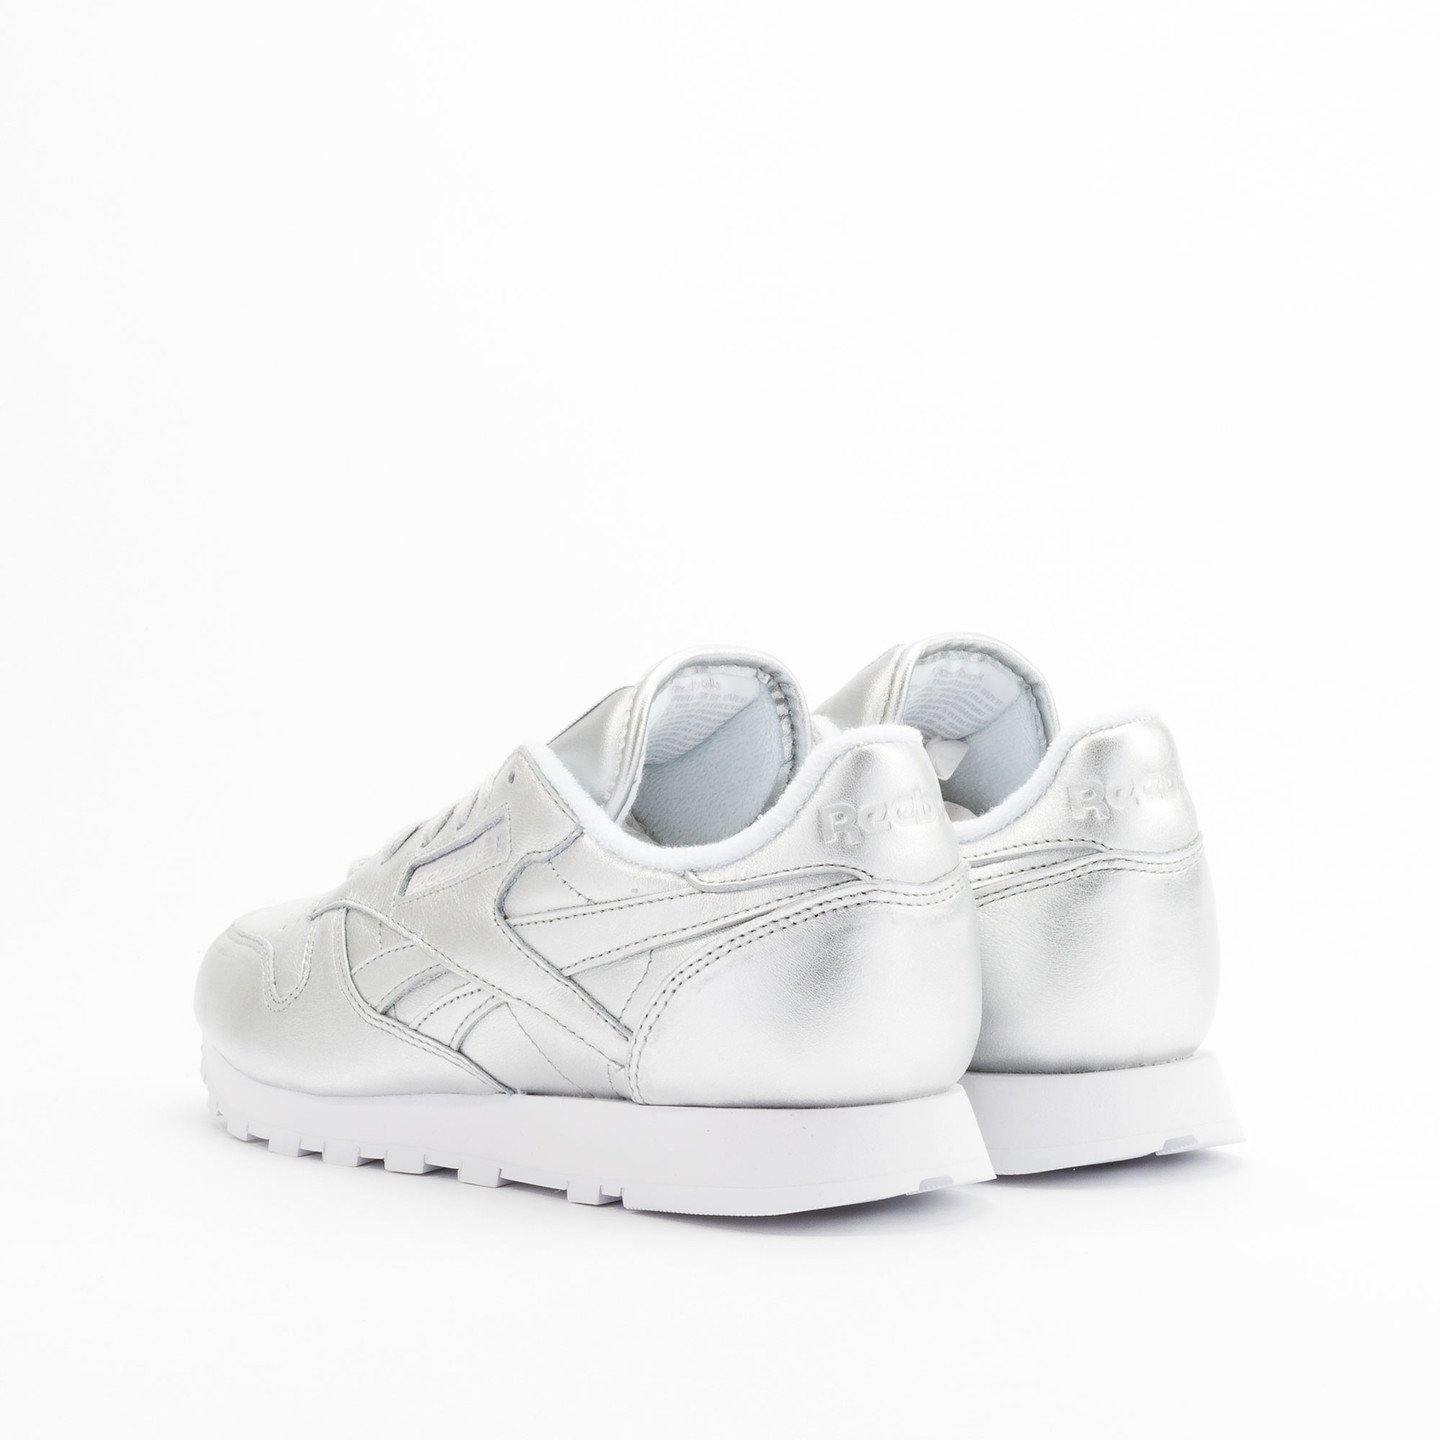 Reebok Classic Leather Spirit Presence Silver / White V62700-39